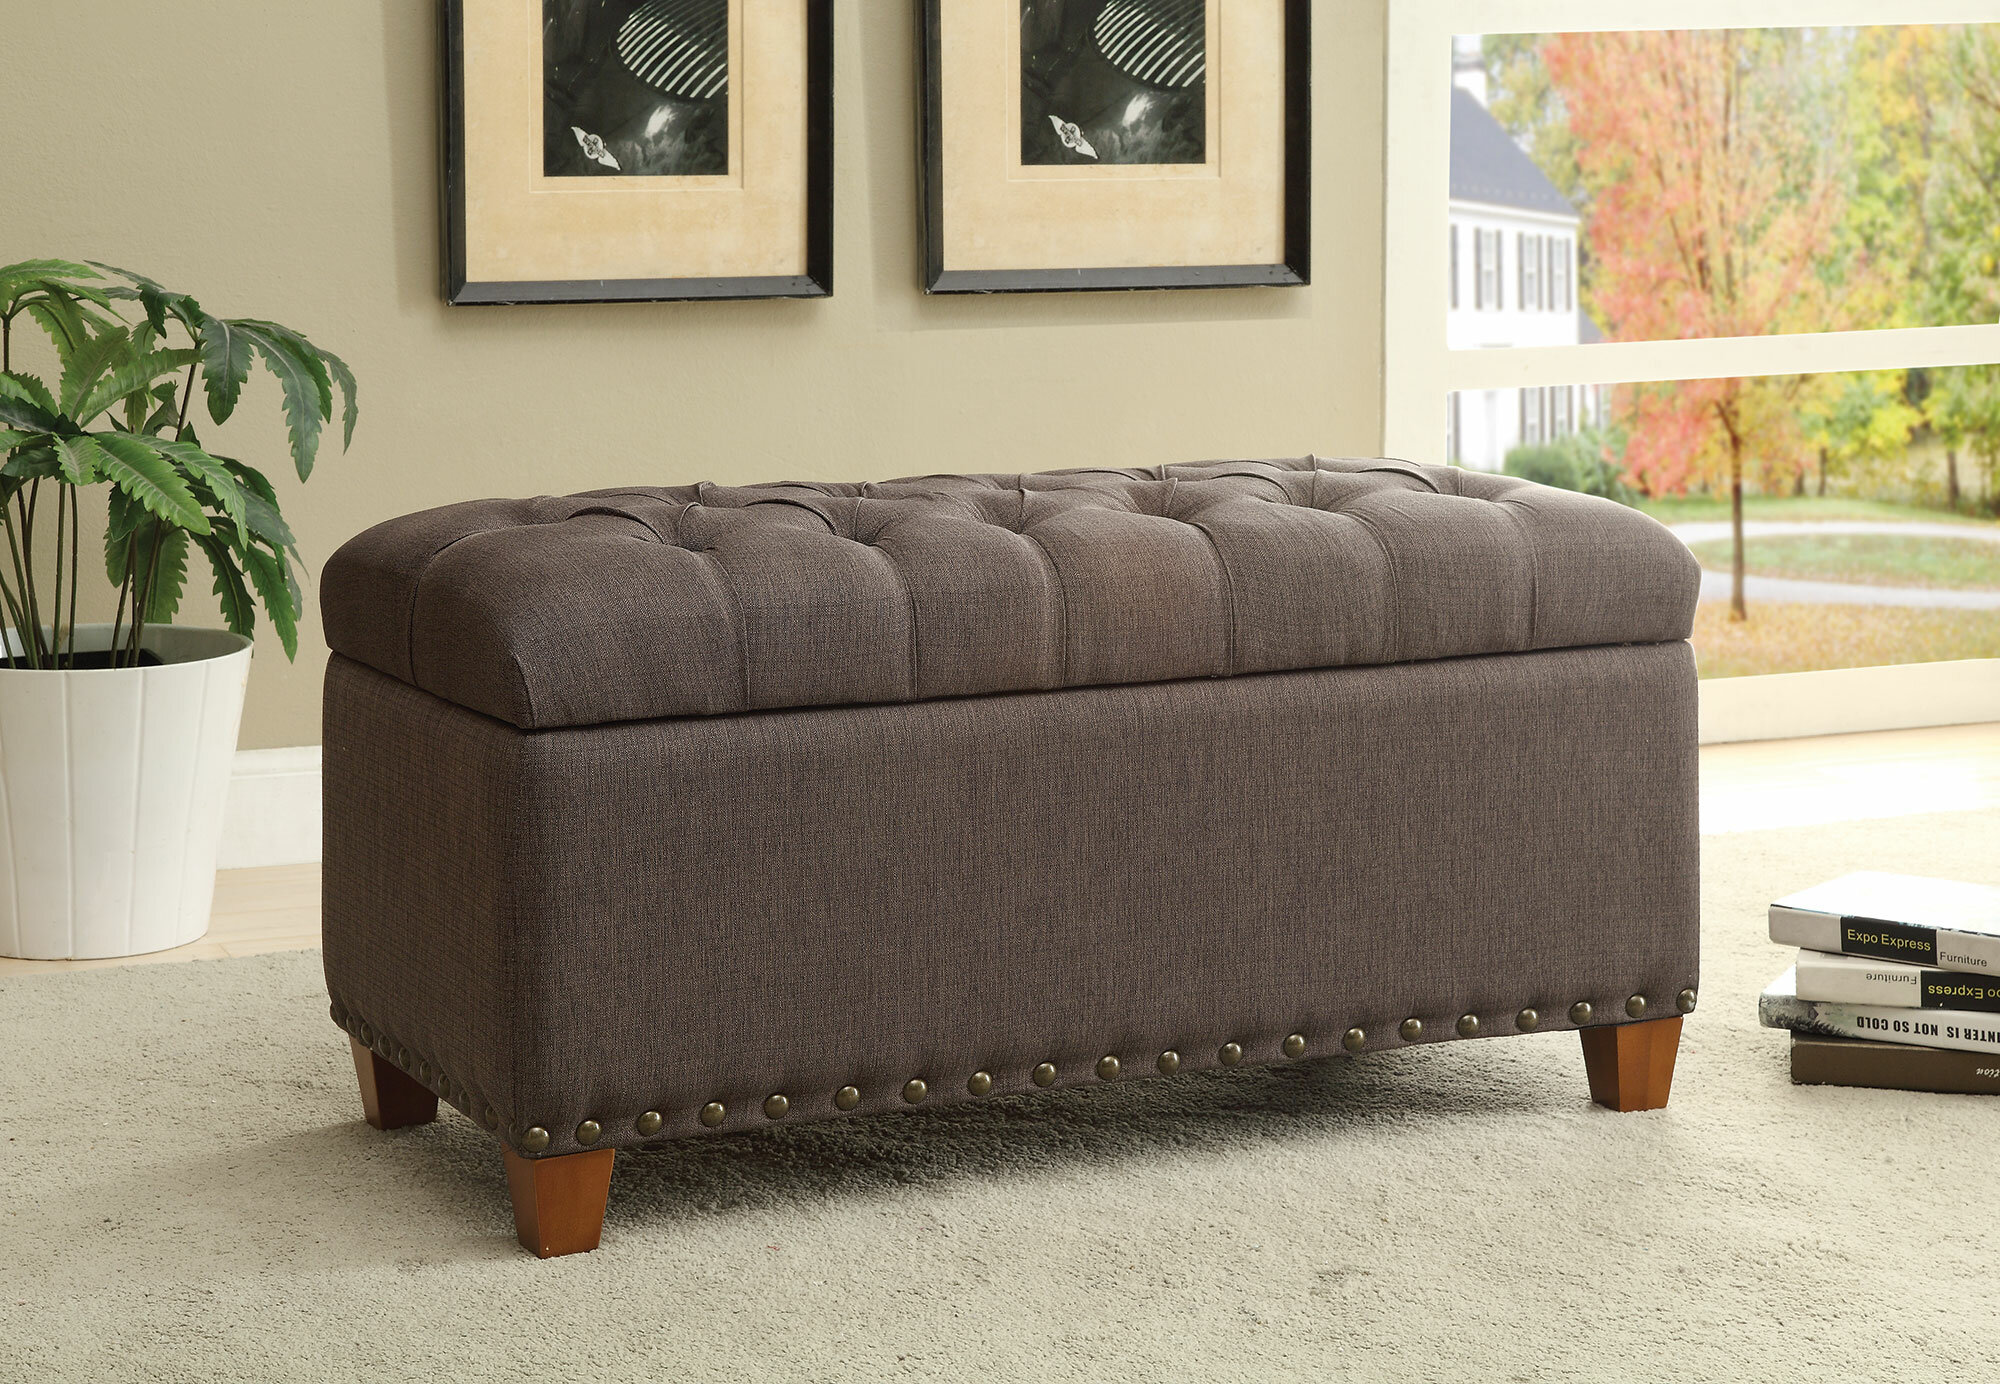 Magnificent Lowman Accent Upholstered Storage Bench Dailytribune Chair Design For Home Dailytribuneorg